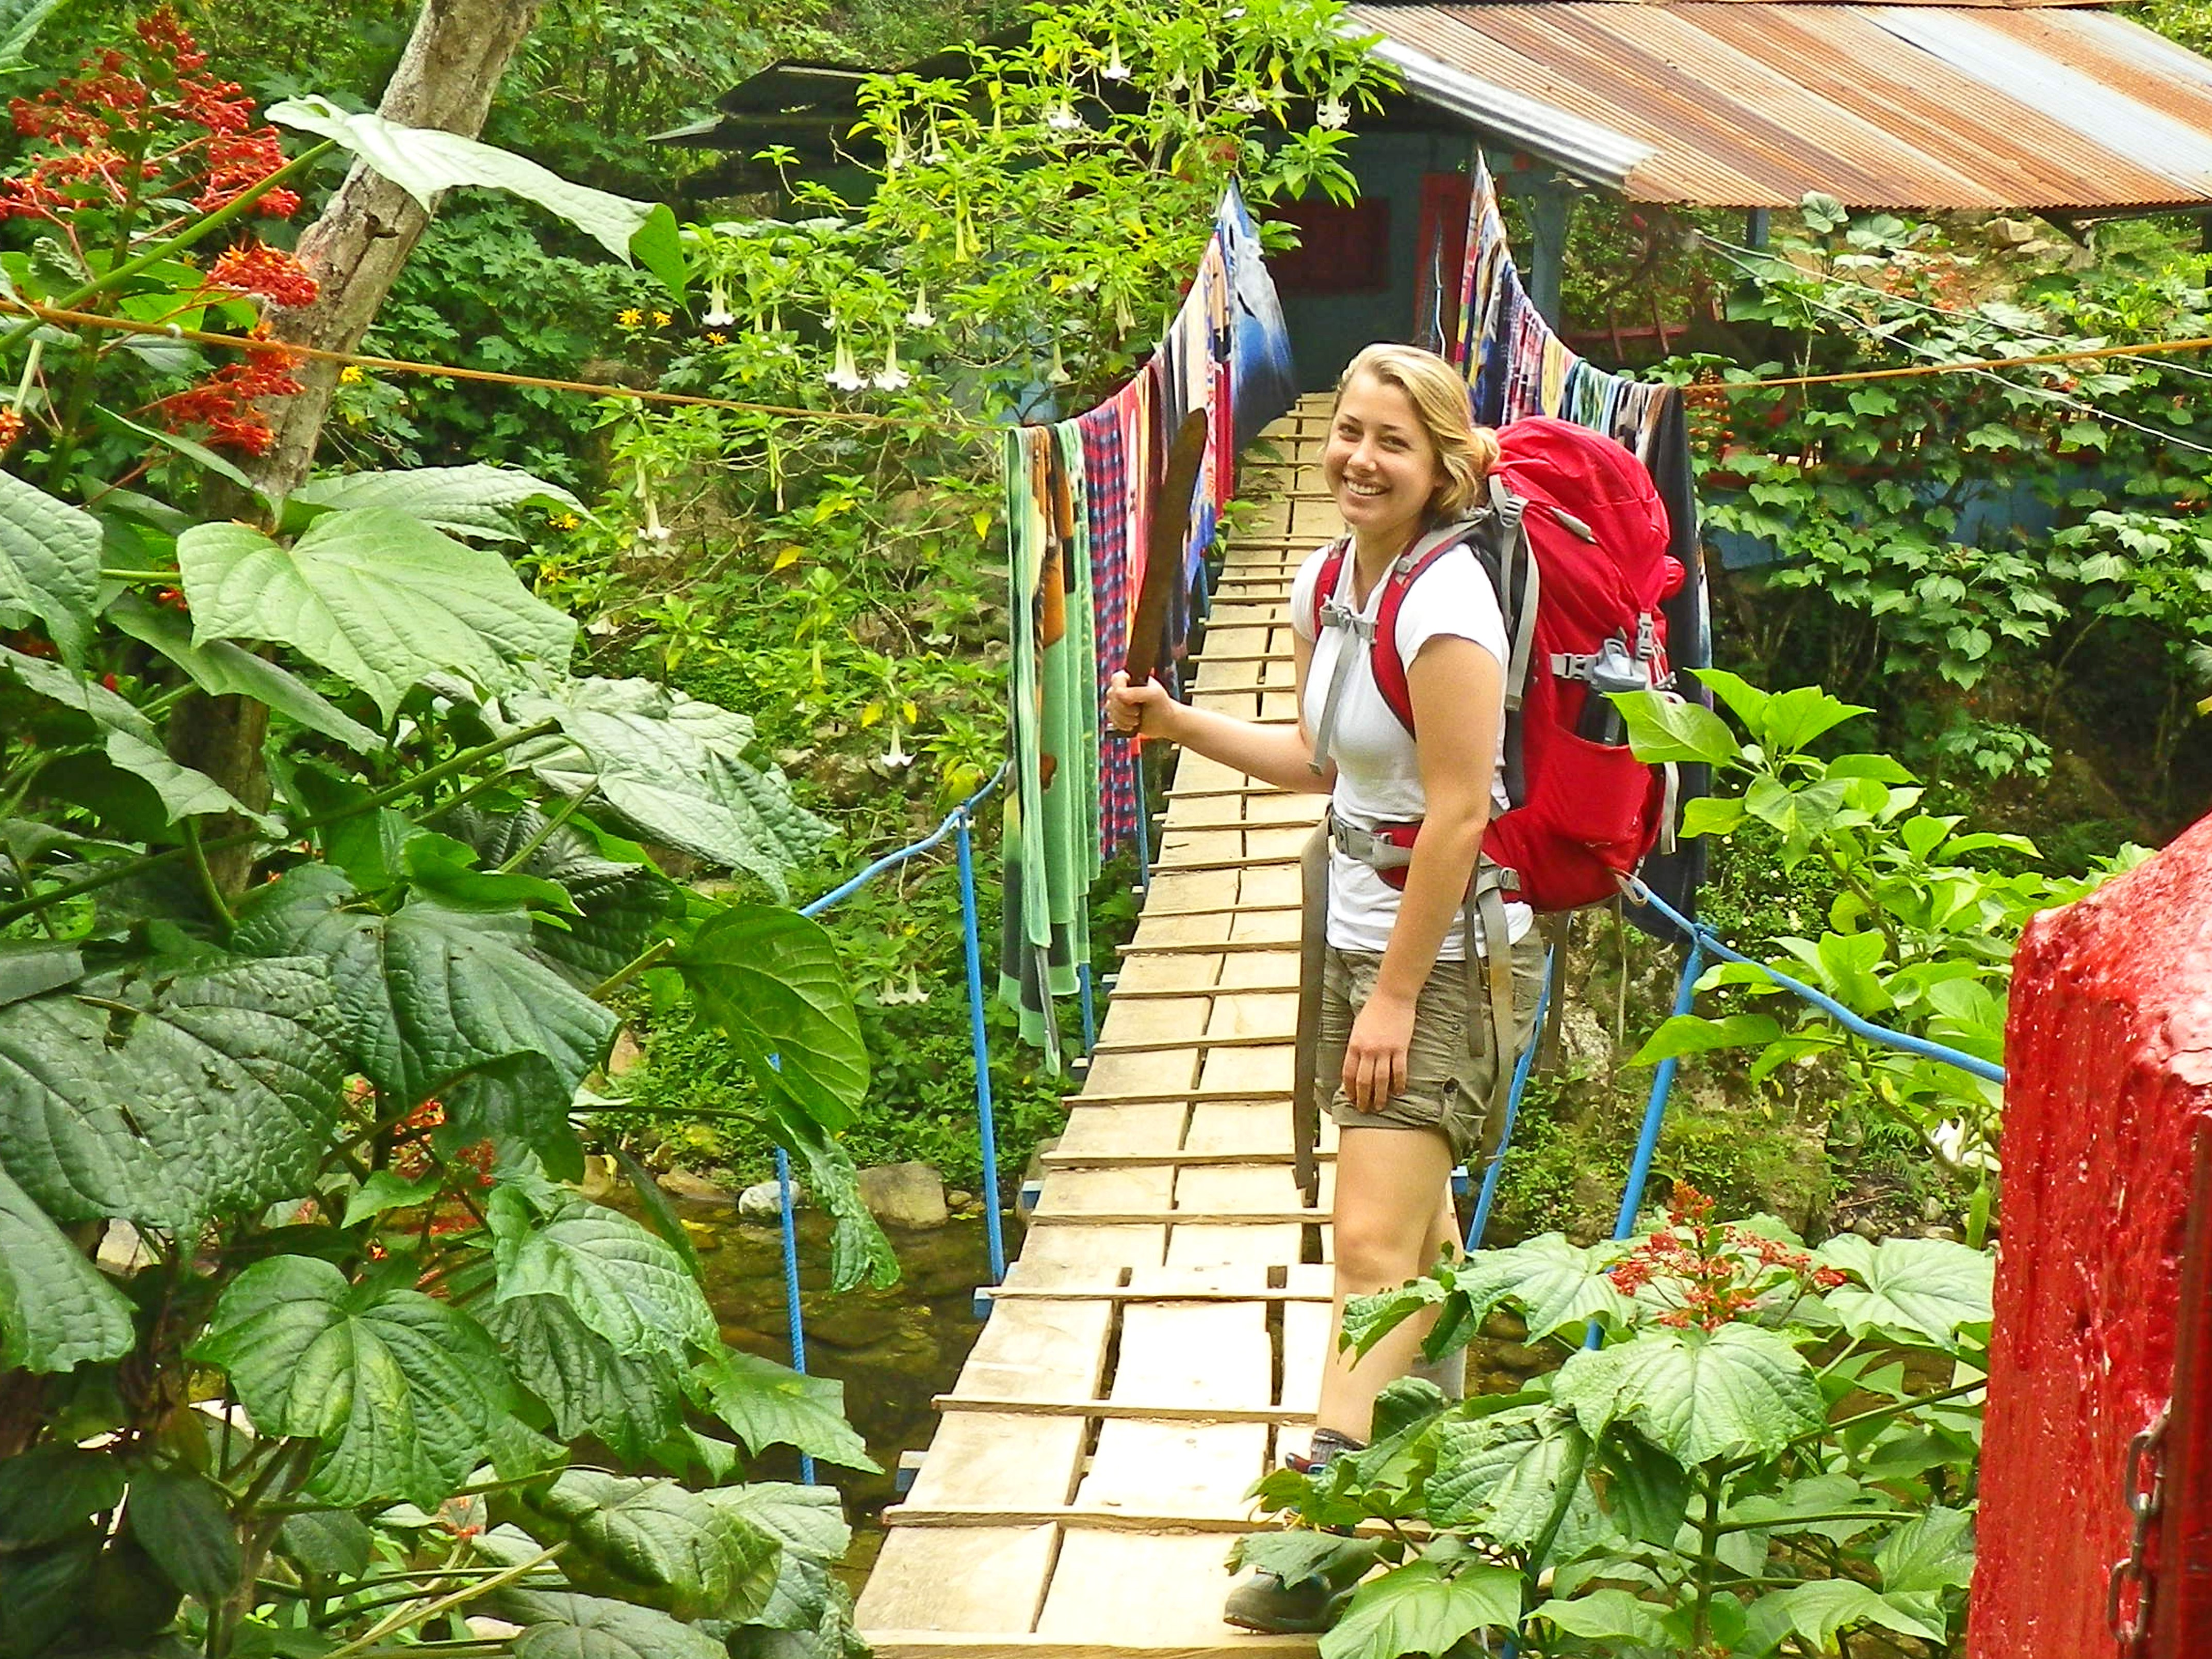 Exploring Women's Rights Deep in the Jungles of Colombia